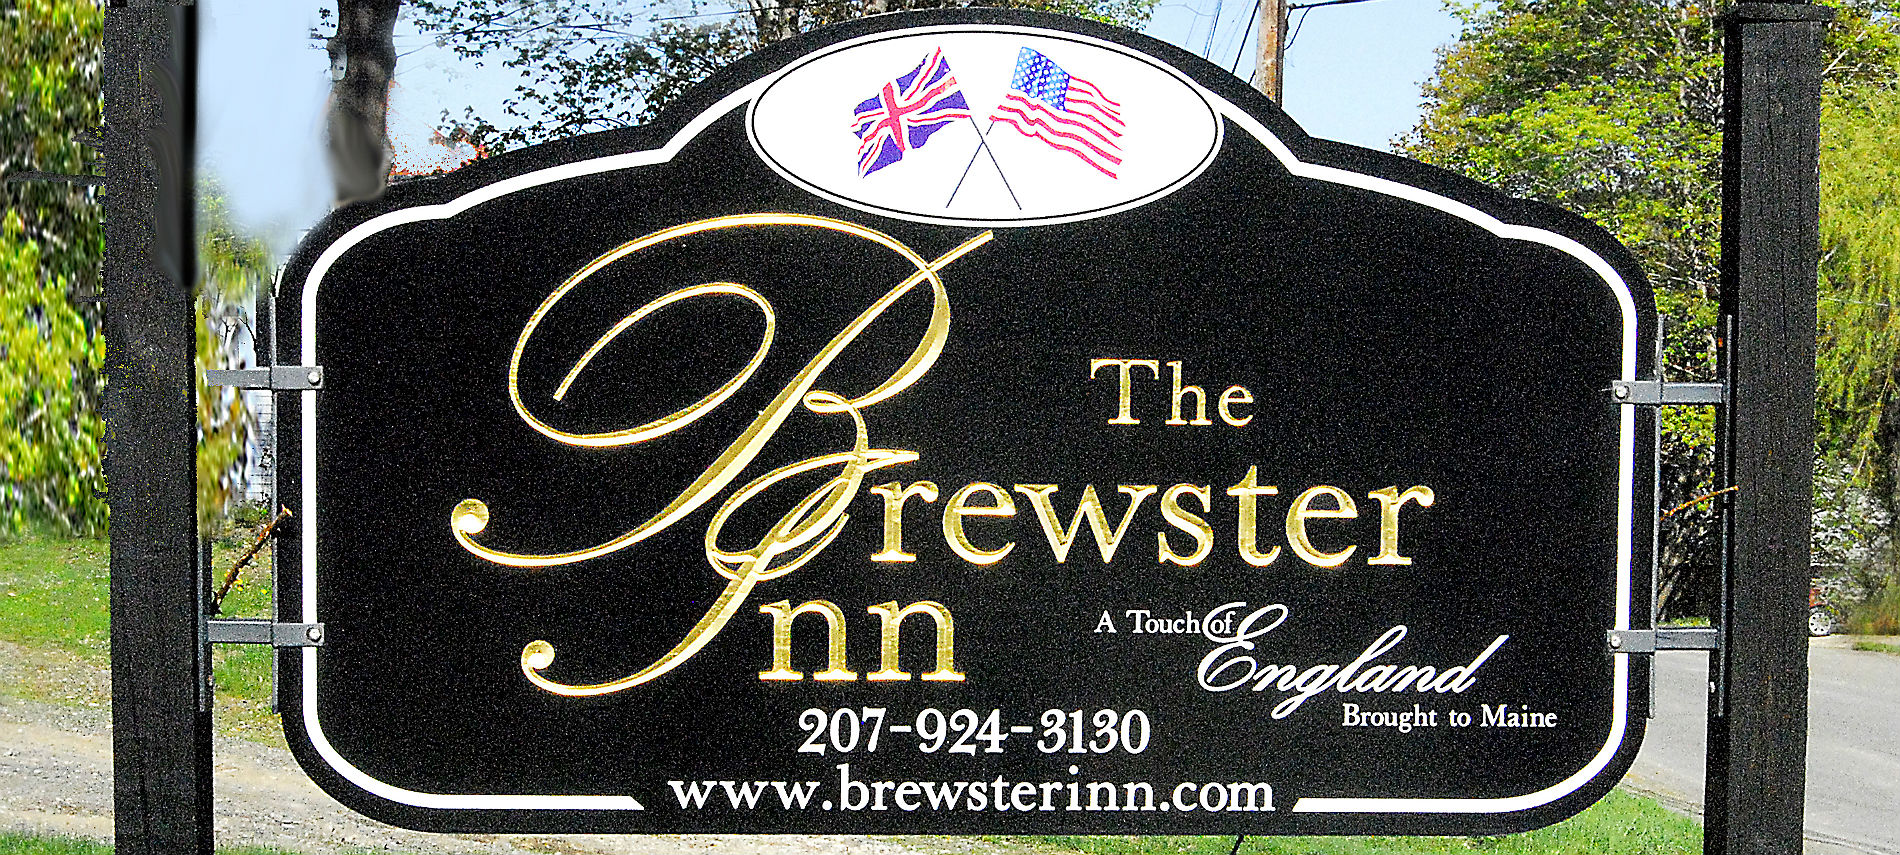 Large exterior sign in black with American and British flags crossed with text : The Brewster Inn